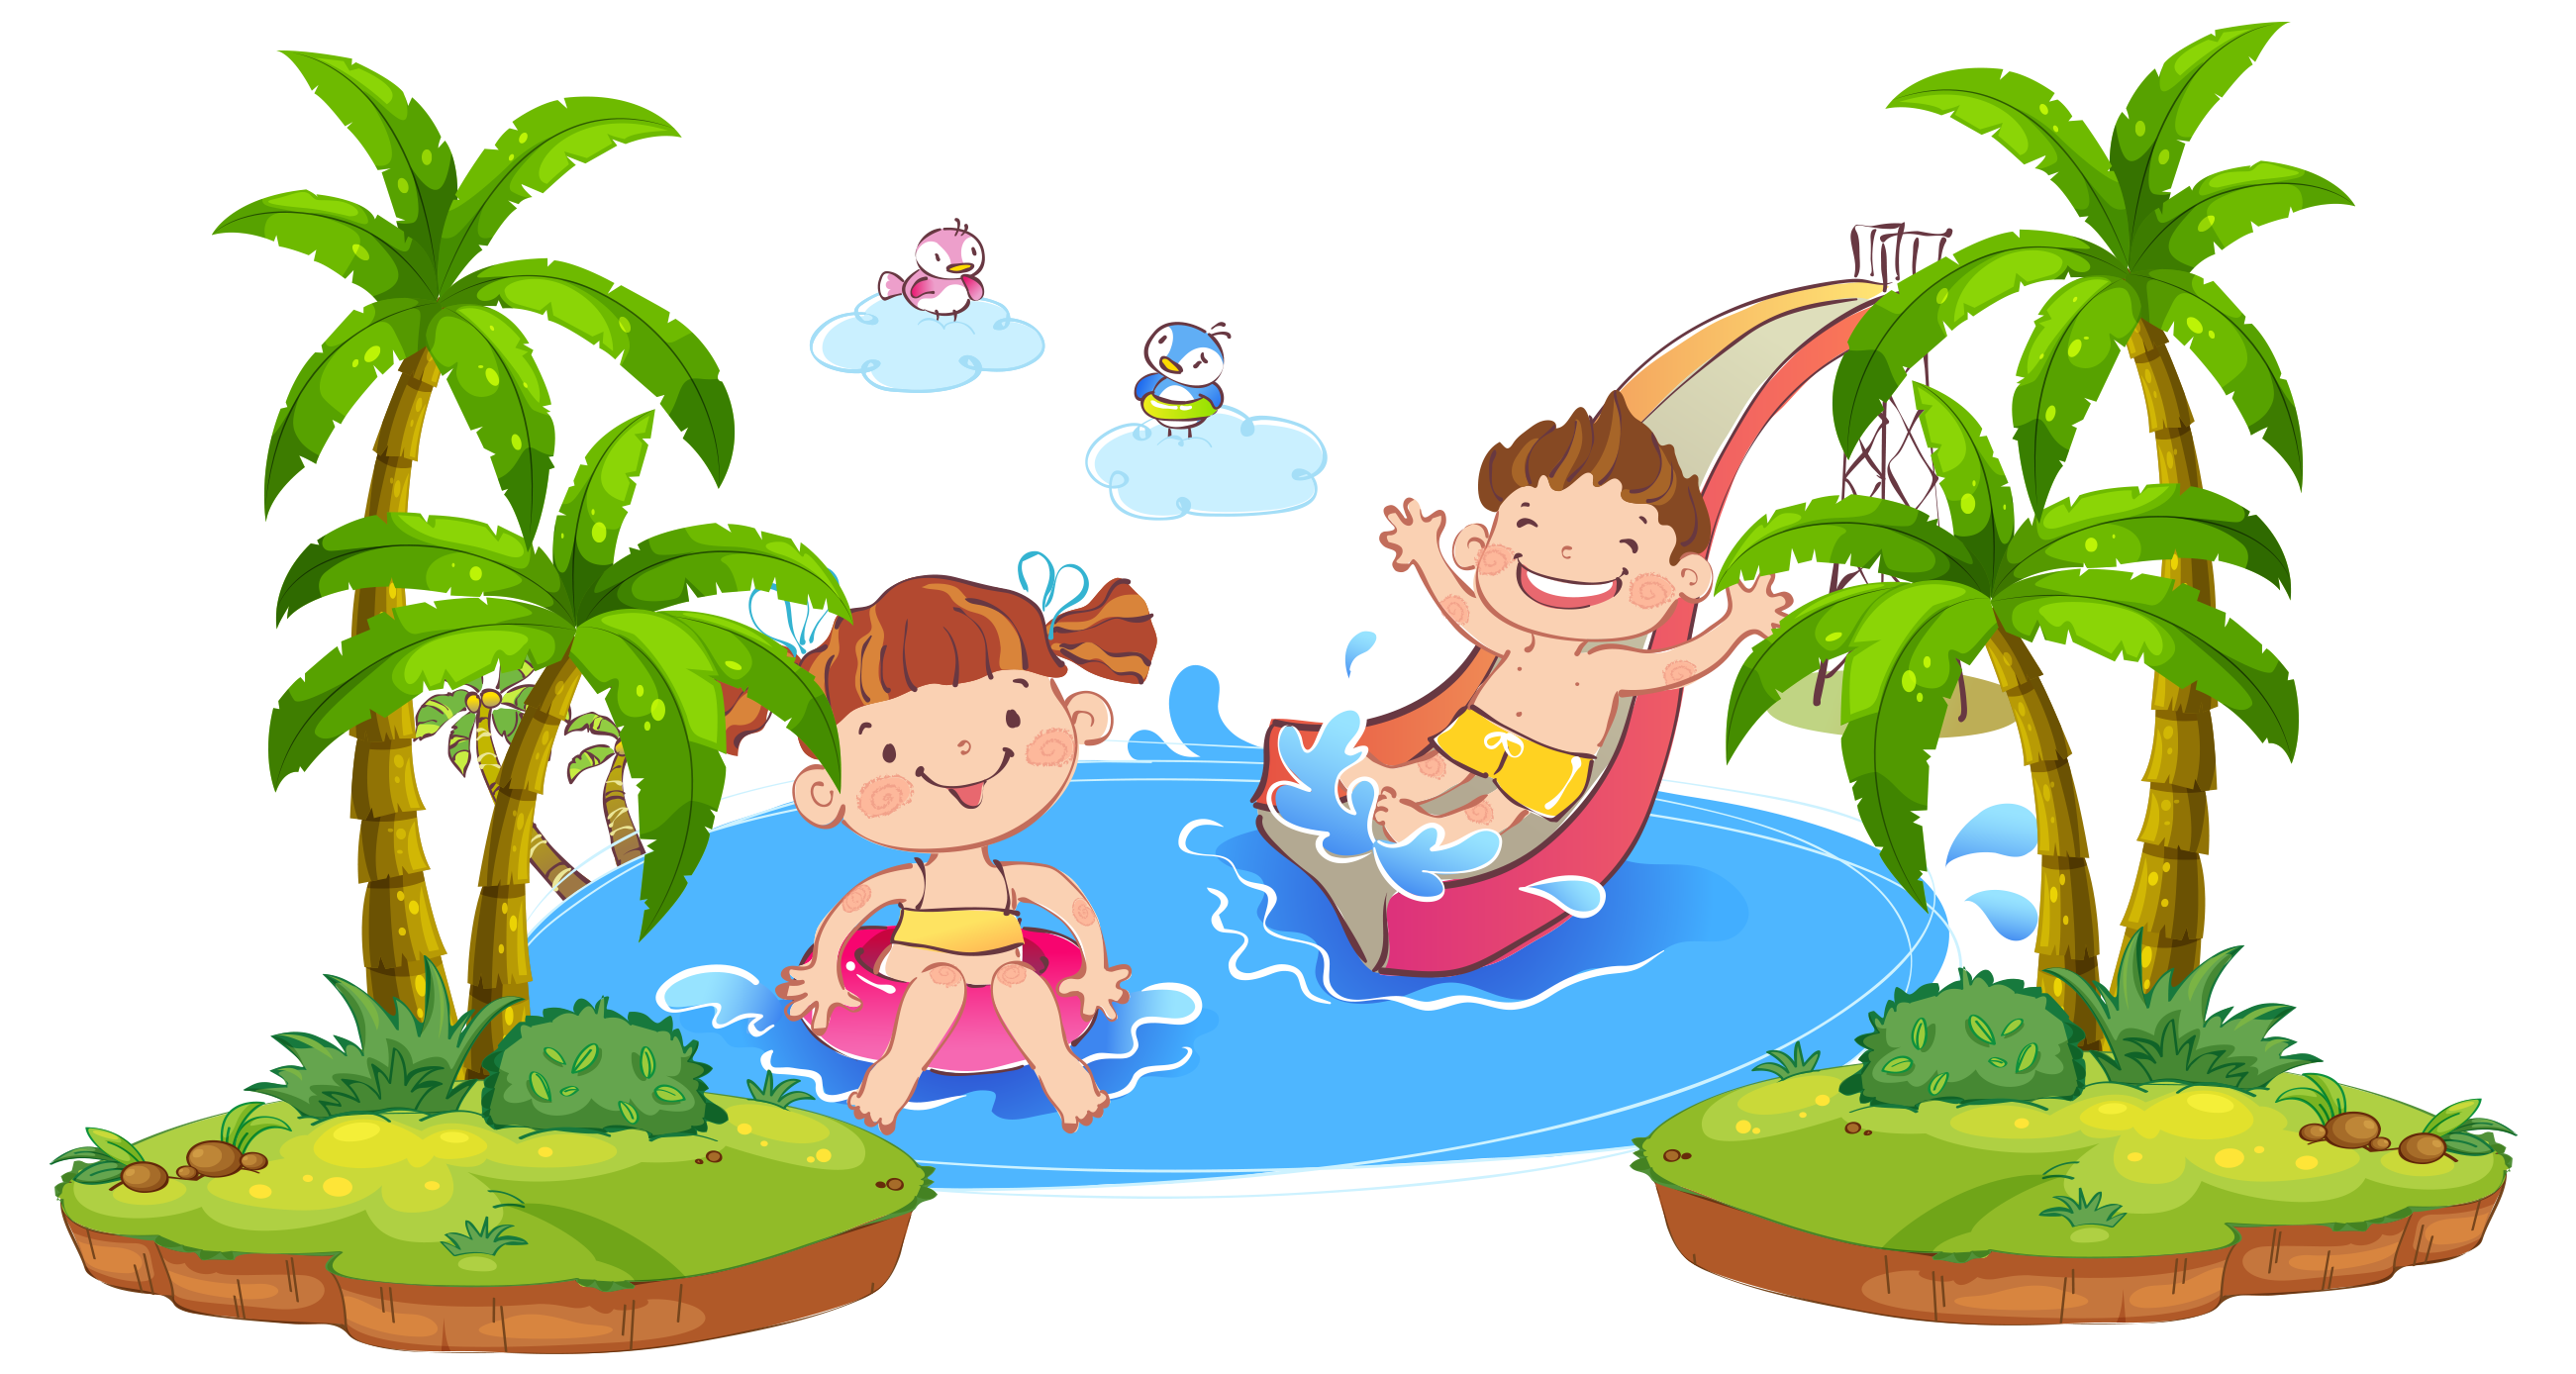 Child cartoon illustration playing. Splash clipart water play